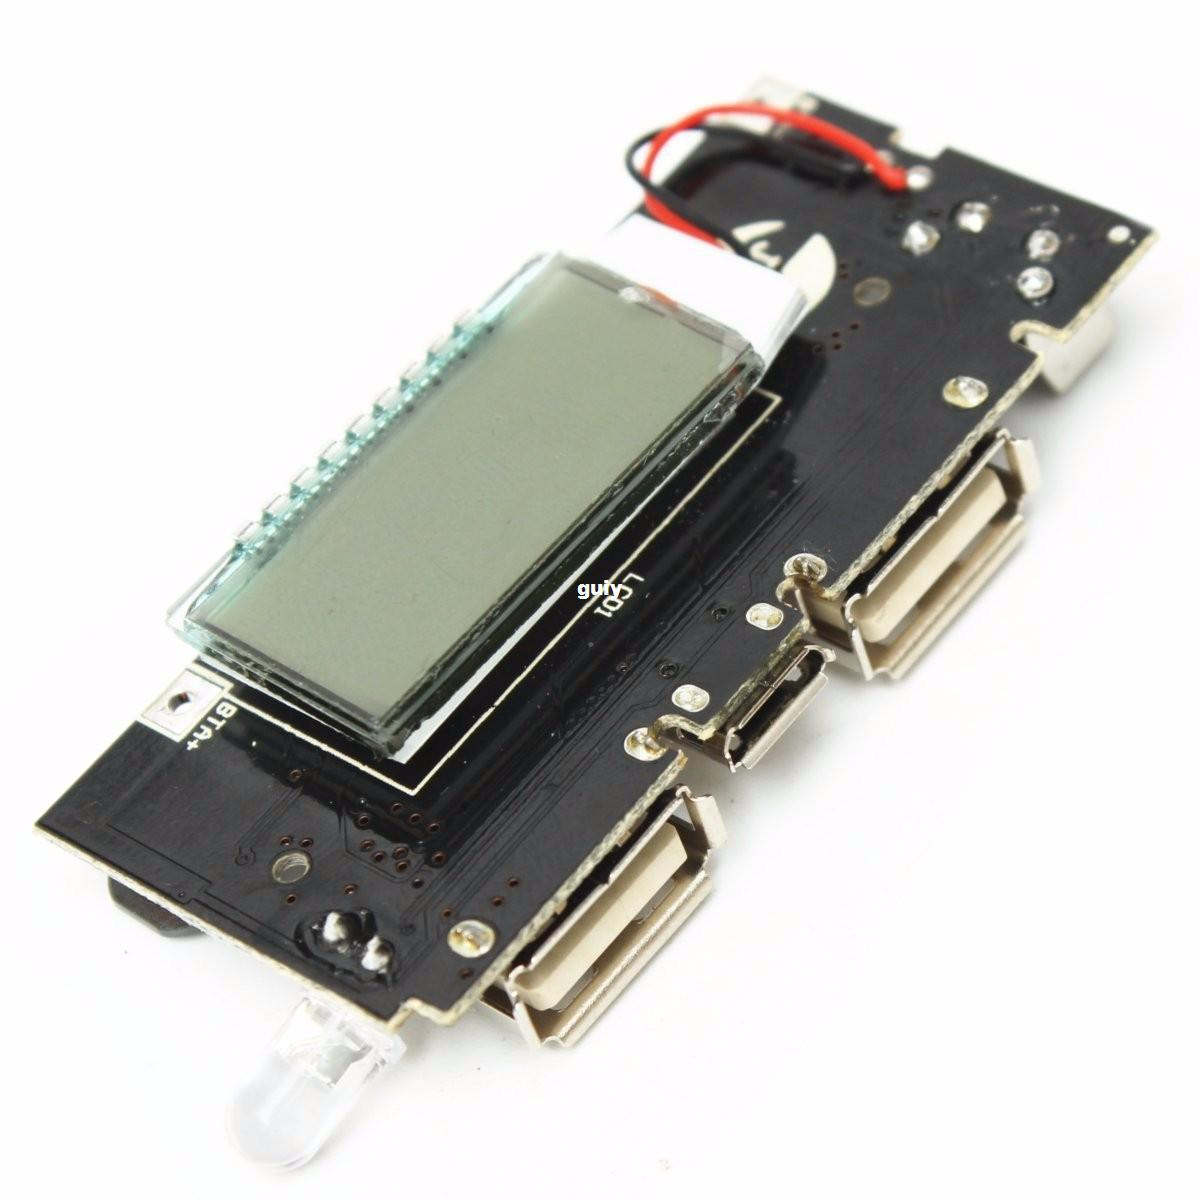 Freeshipping Dual USB 5V 1A 2.1A Mobile Power Bank 18650 Battery Charger PCB Power Module Accessories For Phone DIY New LED LCD Module Board